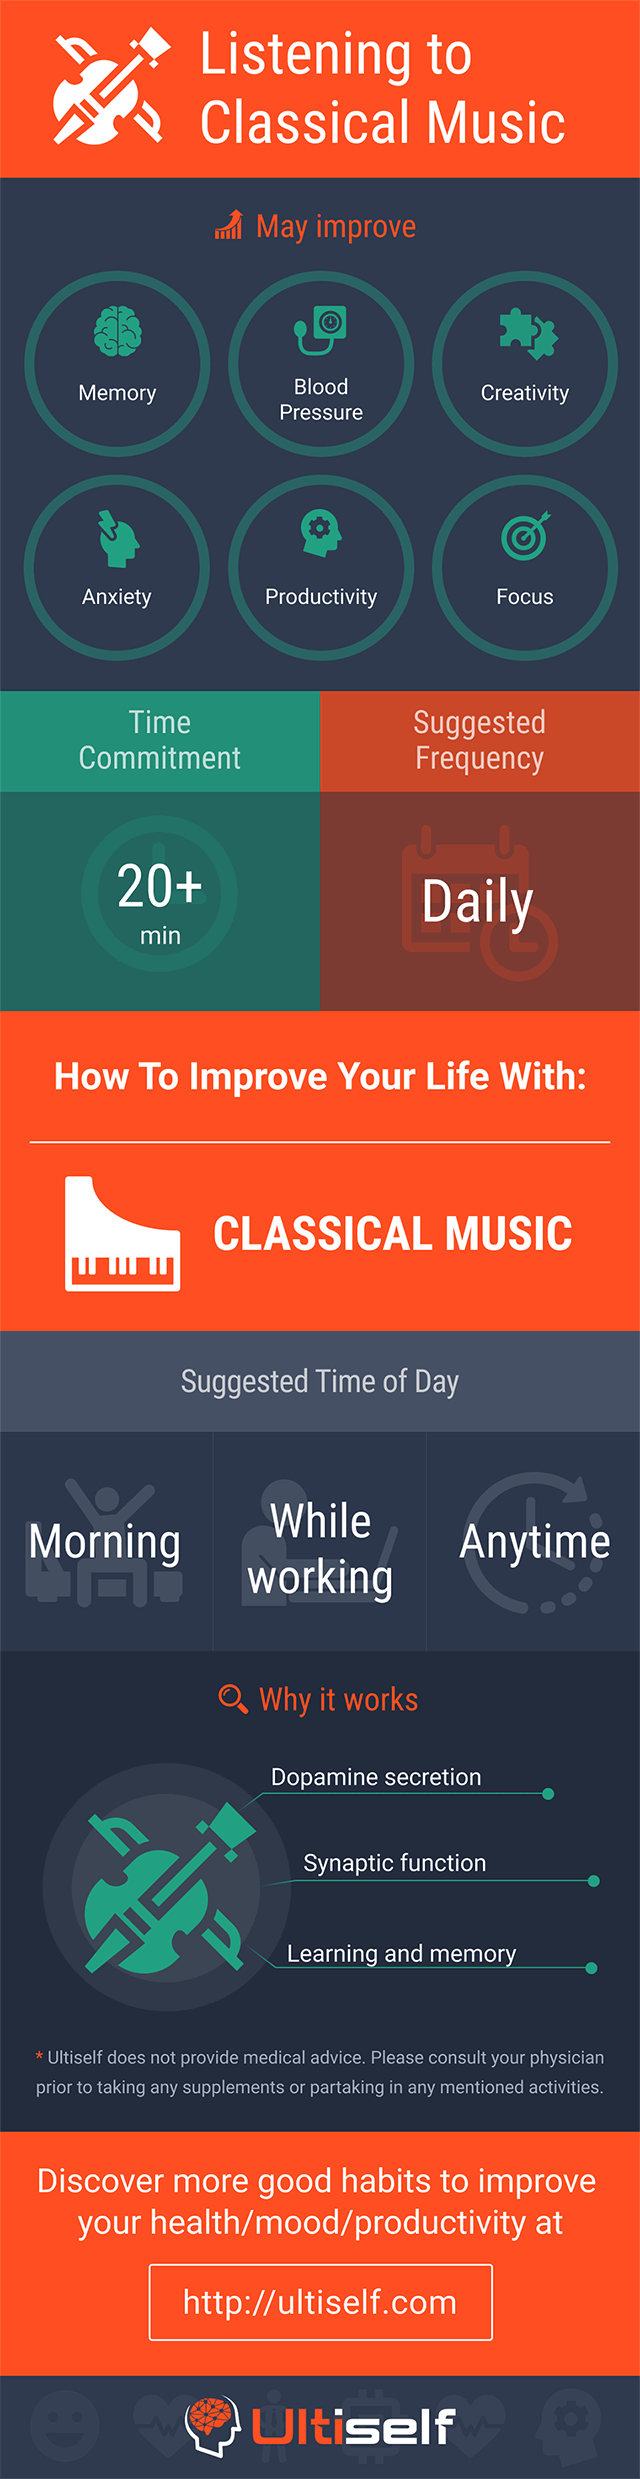 Listening to Classical Music infographic